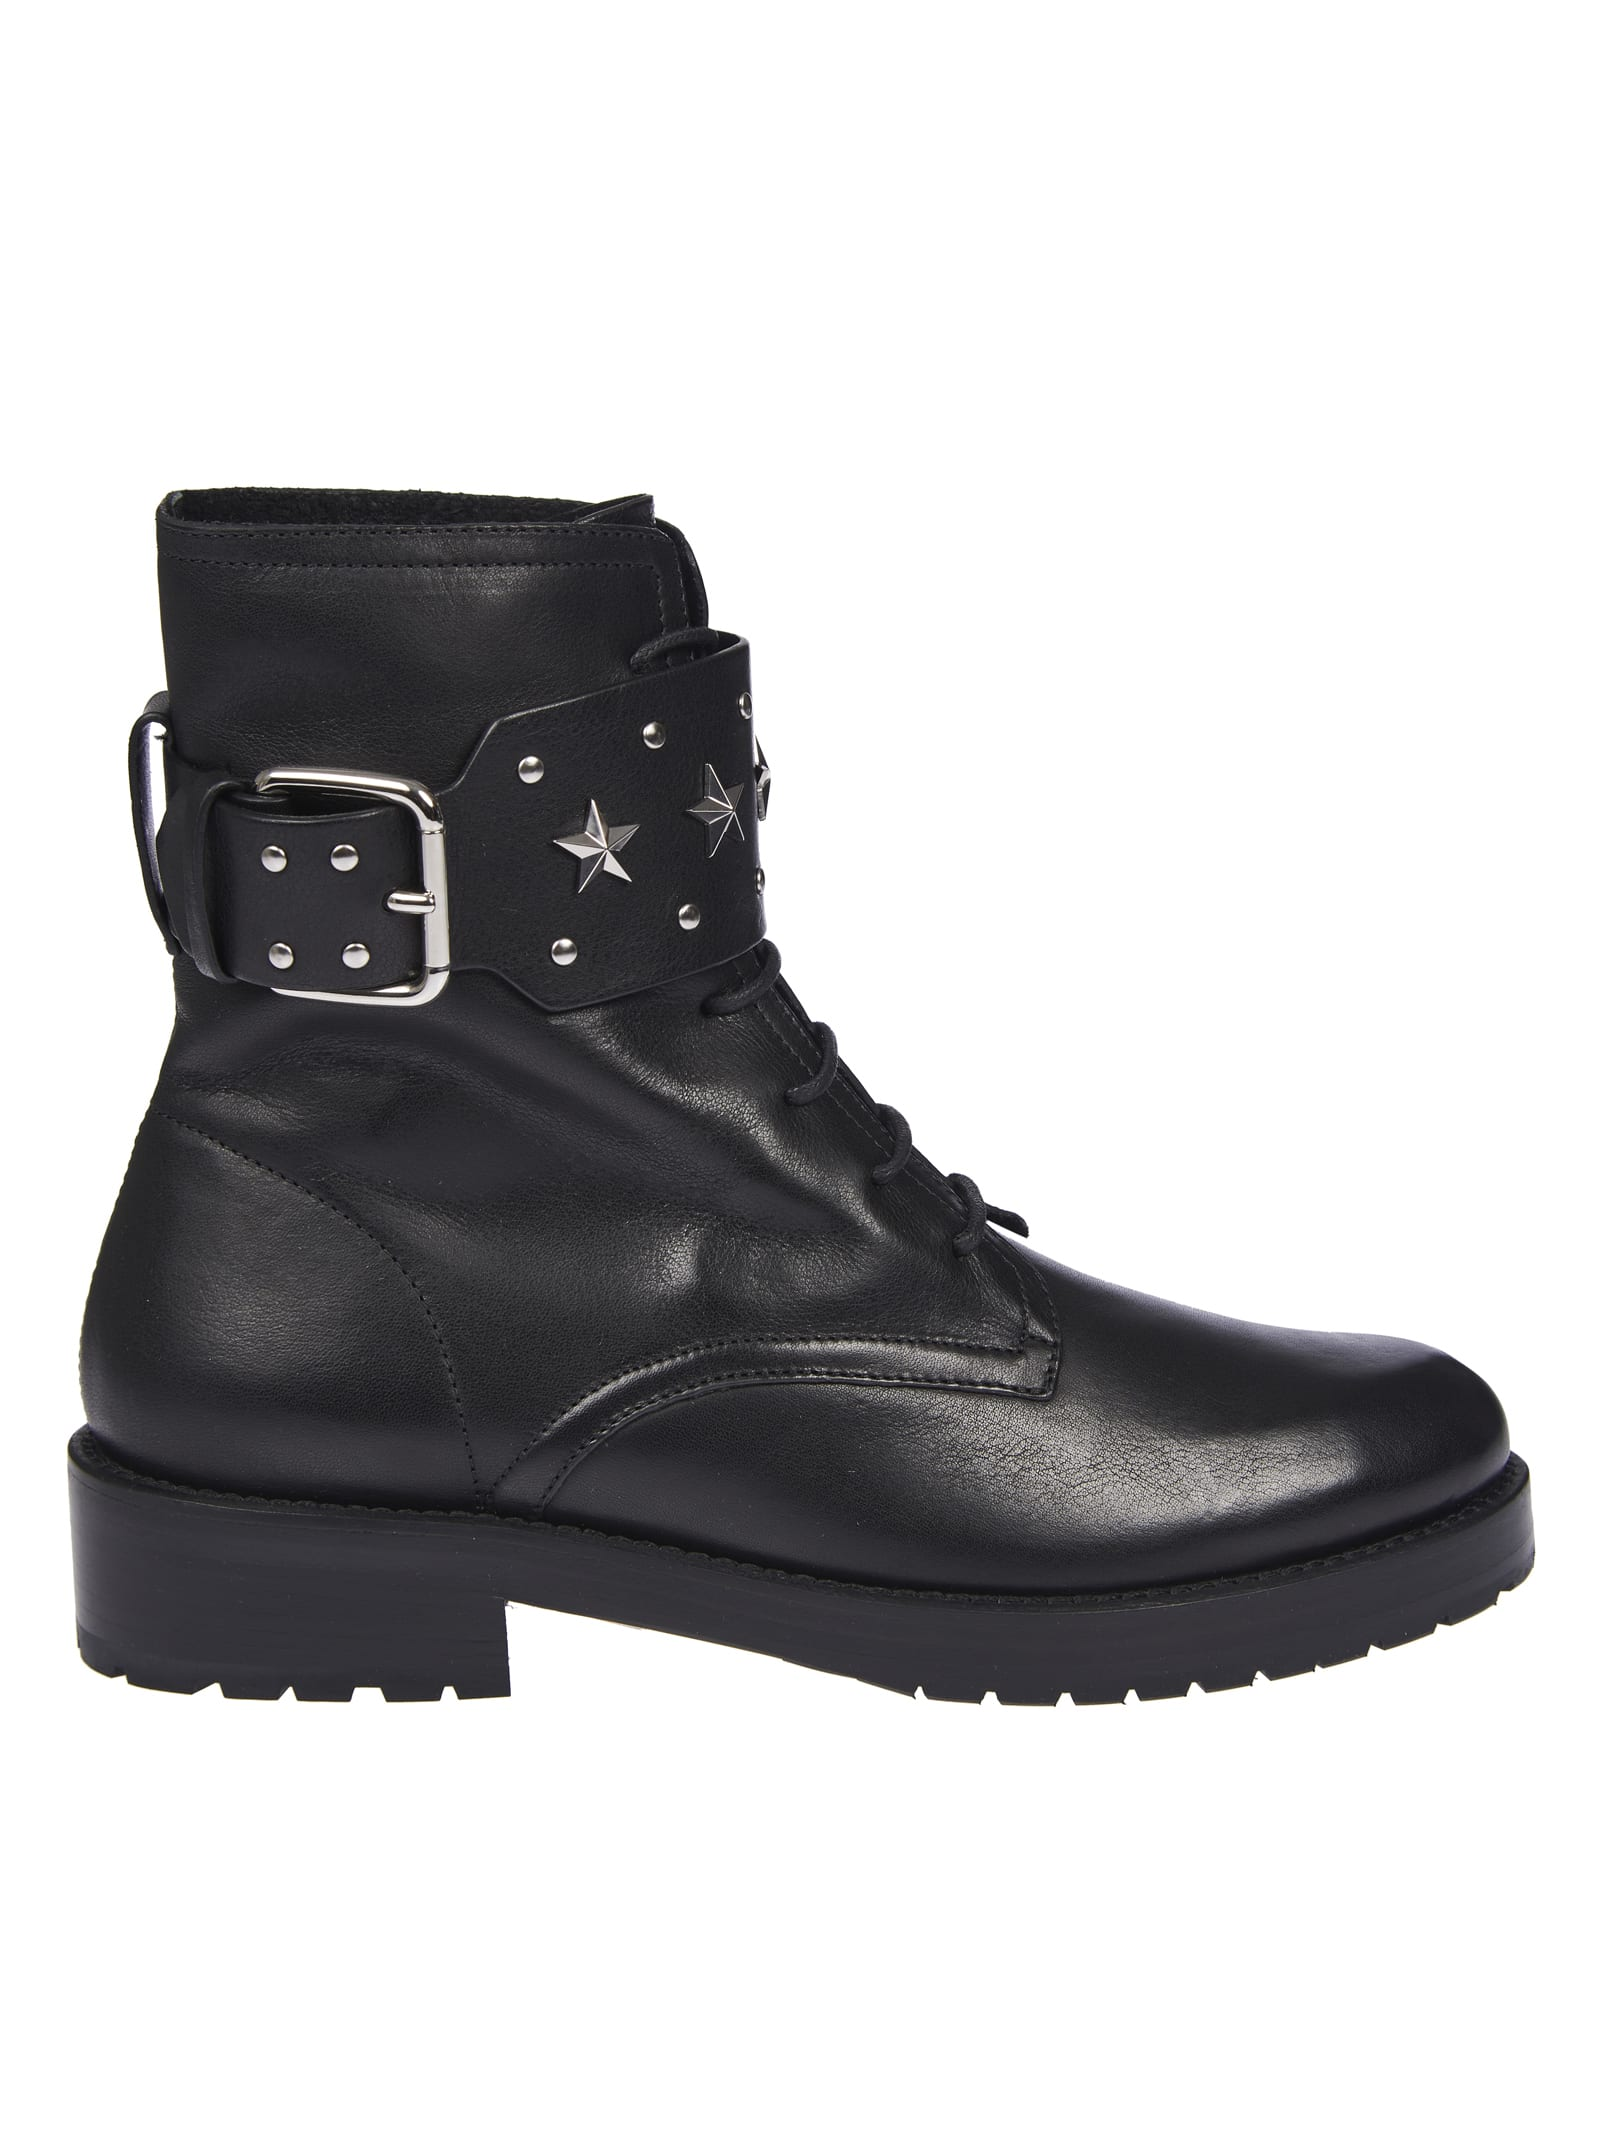 Buy RED Valentino Studded Side Buckle Lace-up Boots online, shop RED Valentino shoes with free shipping